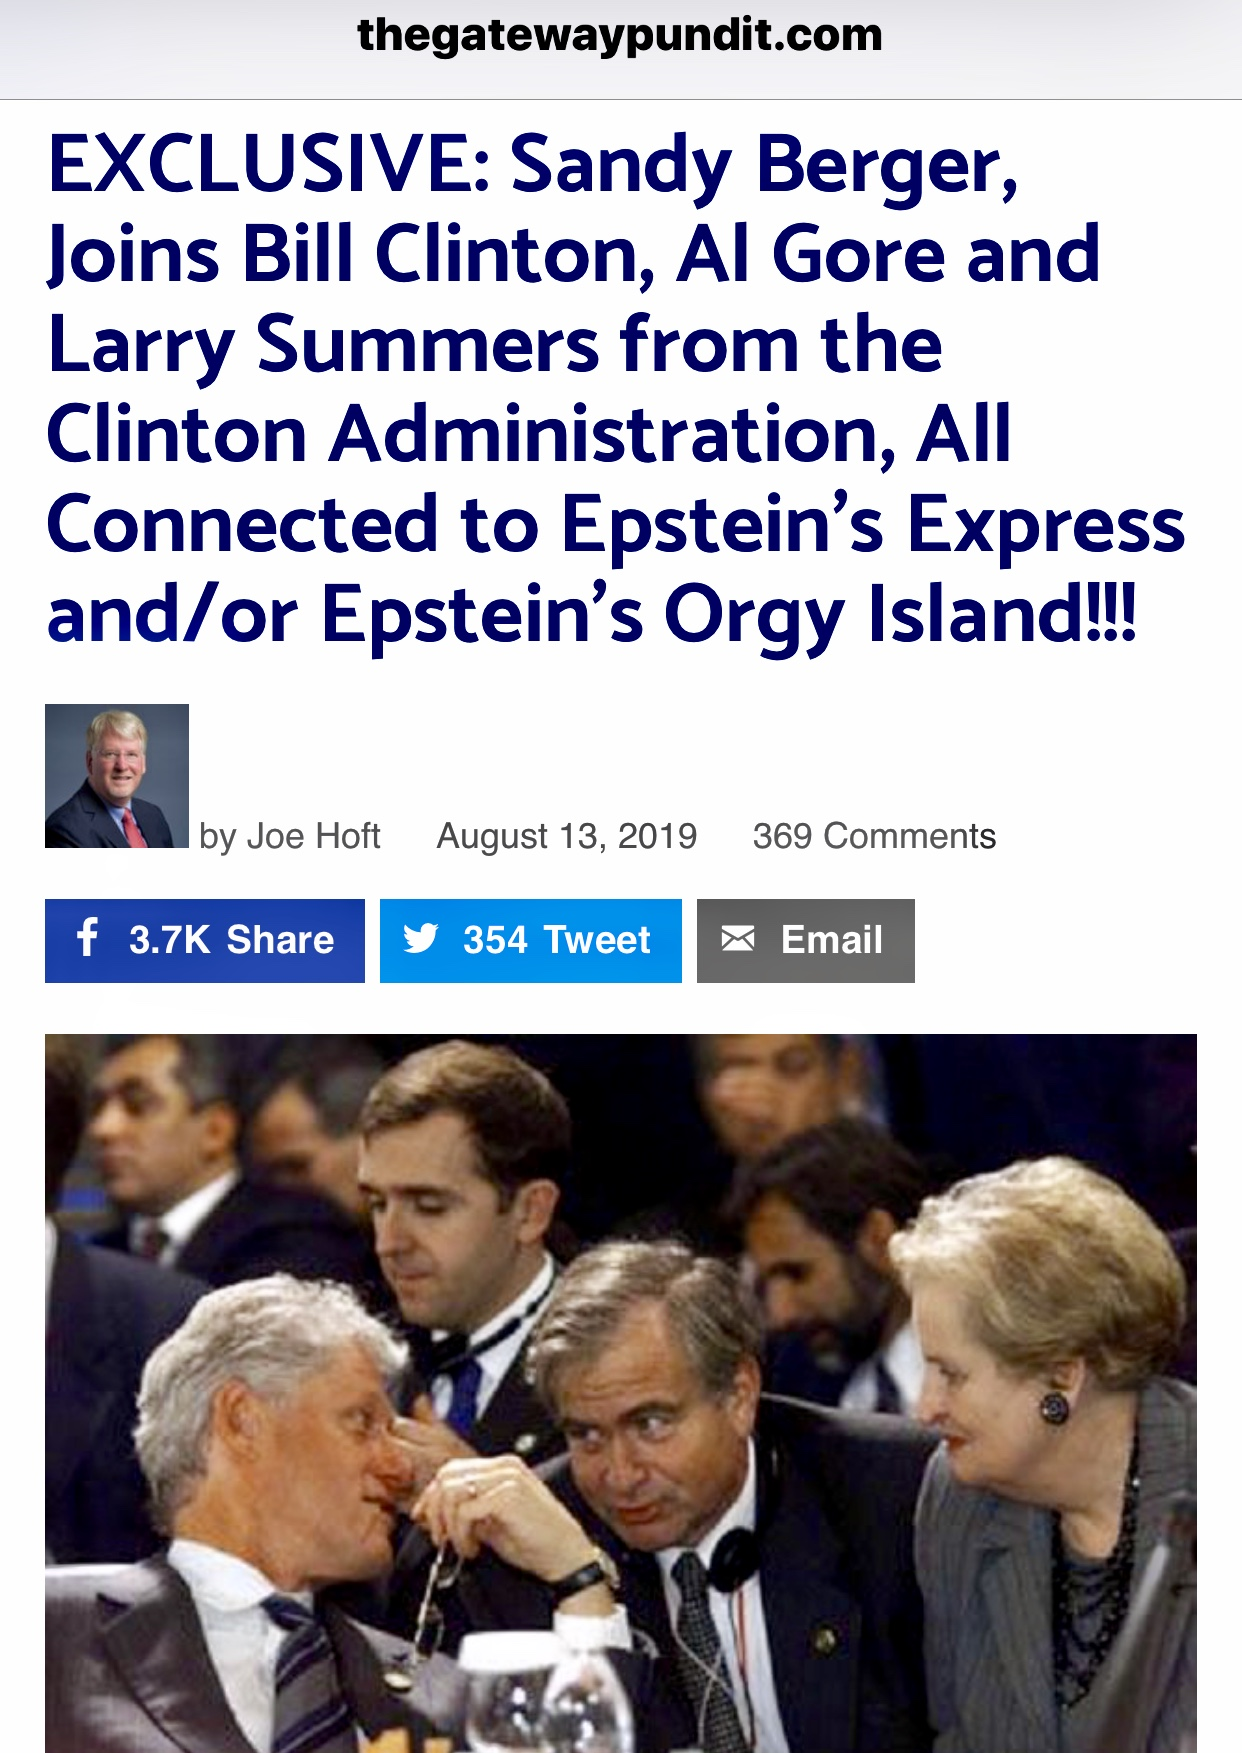 EXCLUSIVE: Sandy Berger, Joins Bill Clinton, Al Gore and Larry Summers from the Clinton Administration, All Connected to Epstein's Express and/or Epstein's Orgy Island!!!